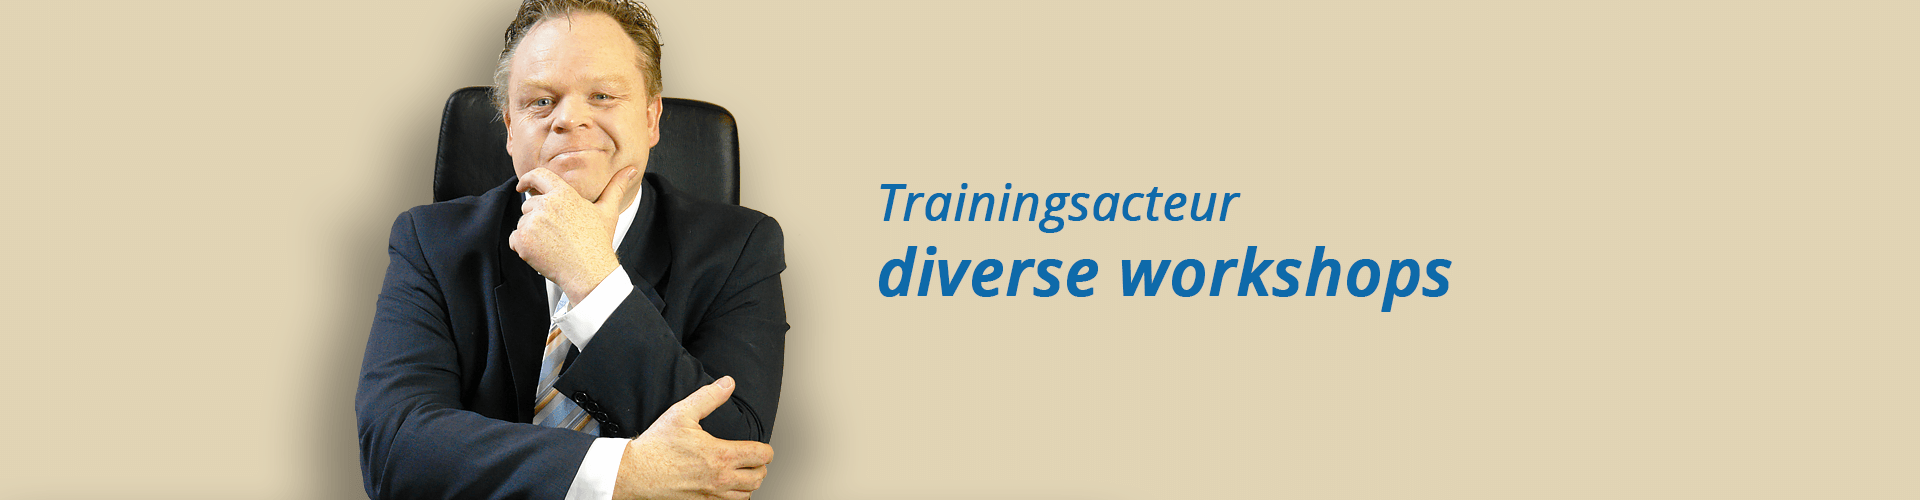 Trainingsacteur diverse workshops